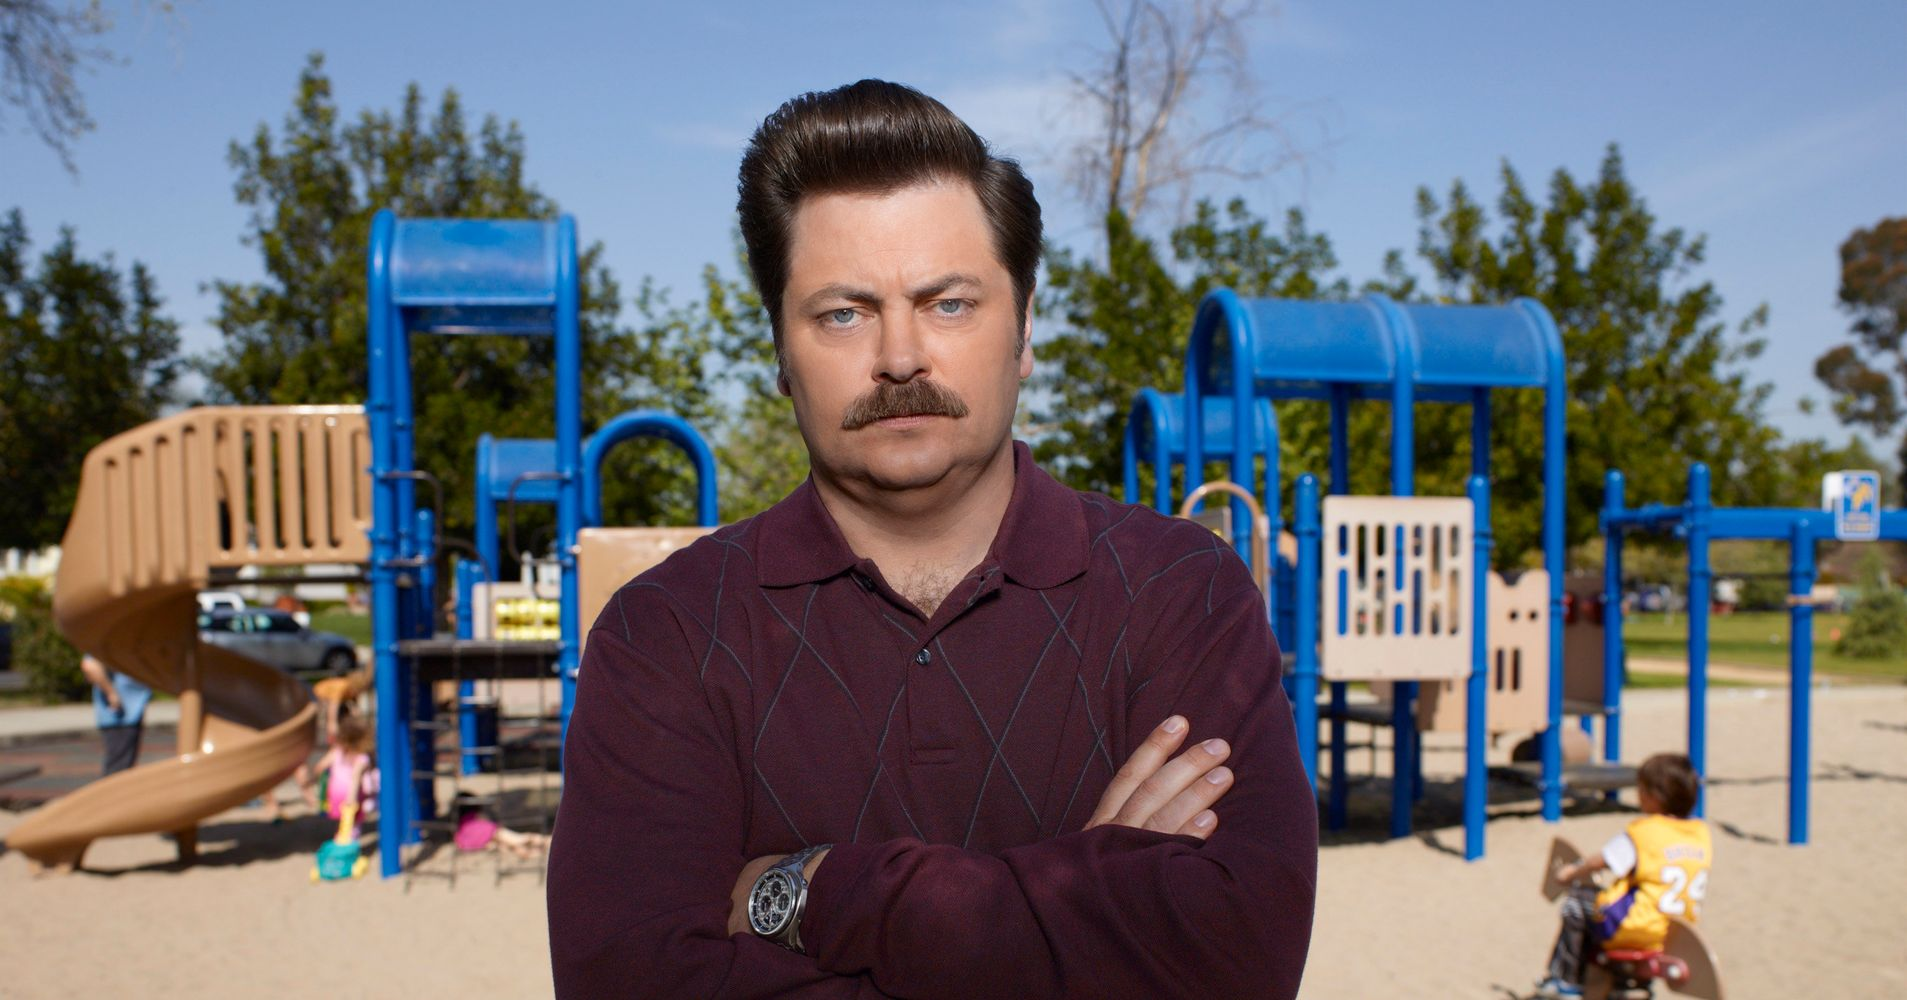 Ron Swanson Tells Fcc Chair Ajit Pai He Has No Honor For Trying To